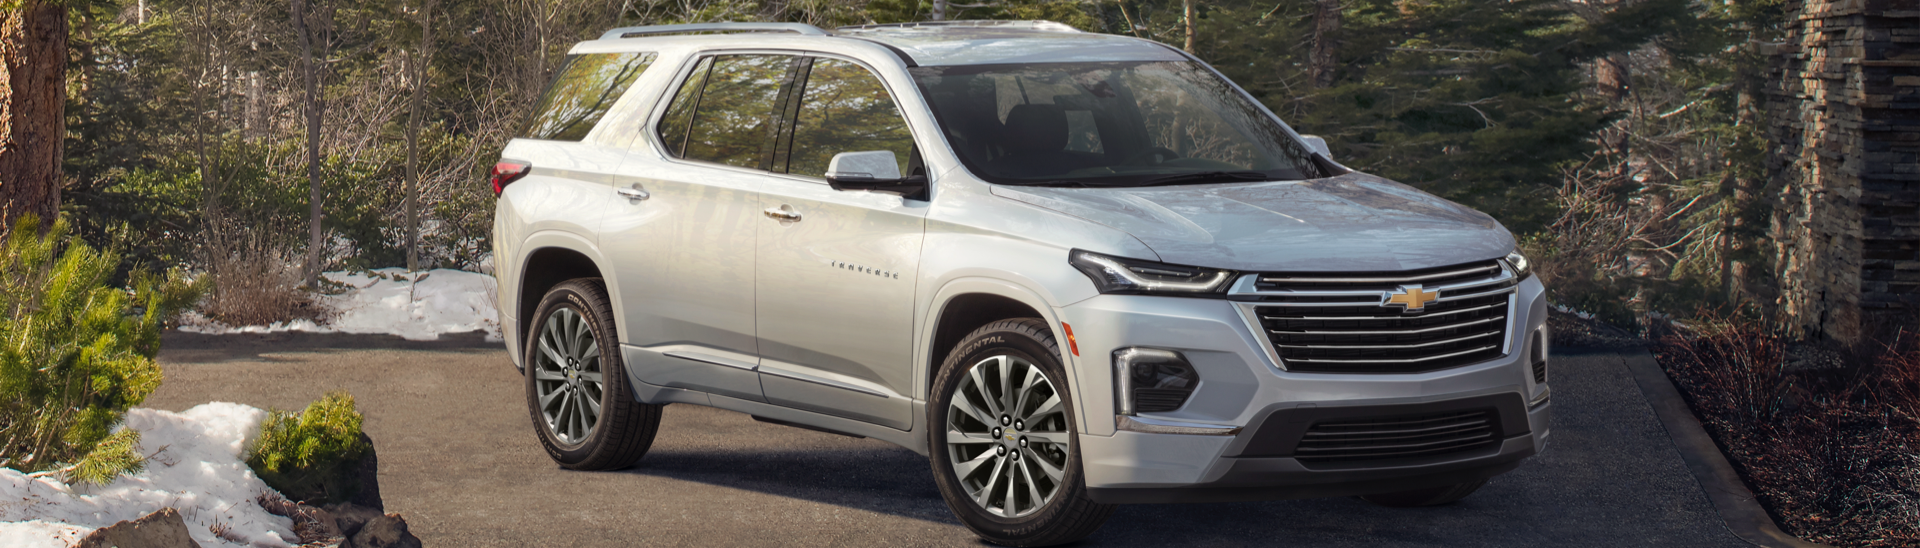 2022 Chevy Traverse Premier next to a cabin in the woods.